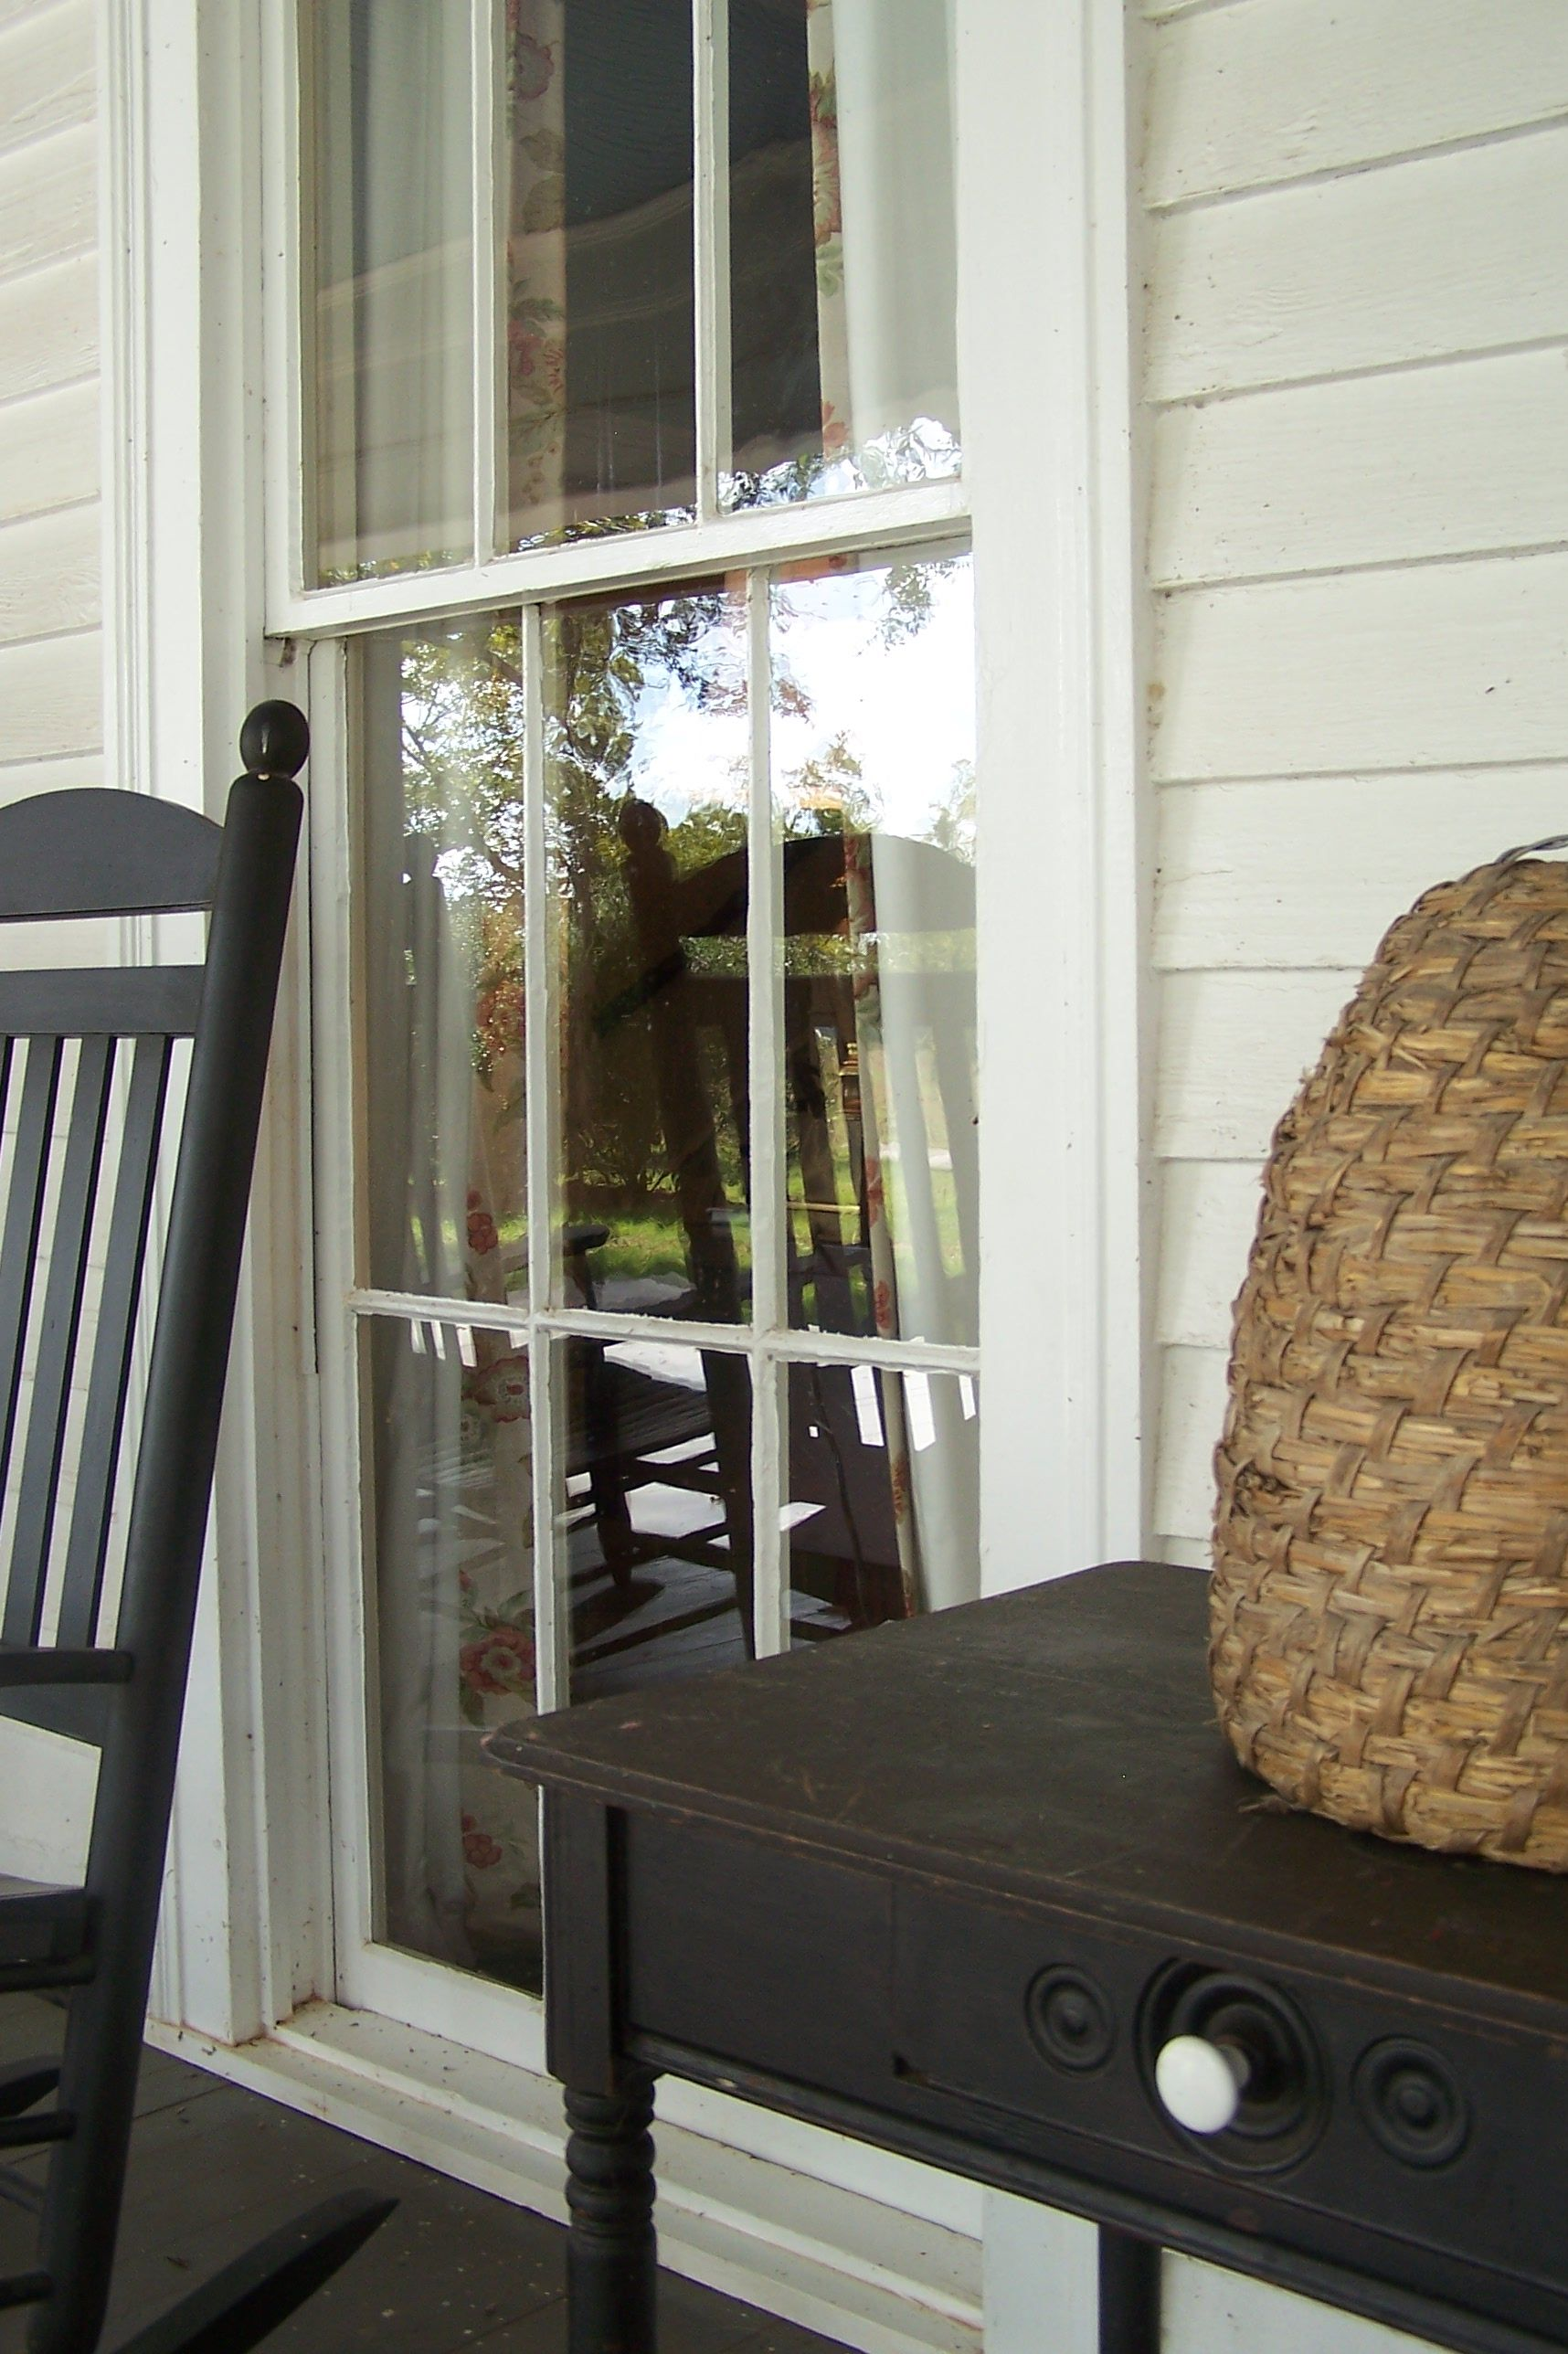 client porch, rocking chair, black, table, bee skep, painted wood floor, view into window, white house